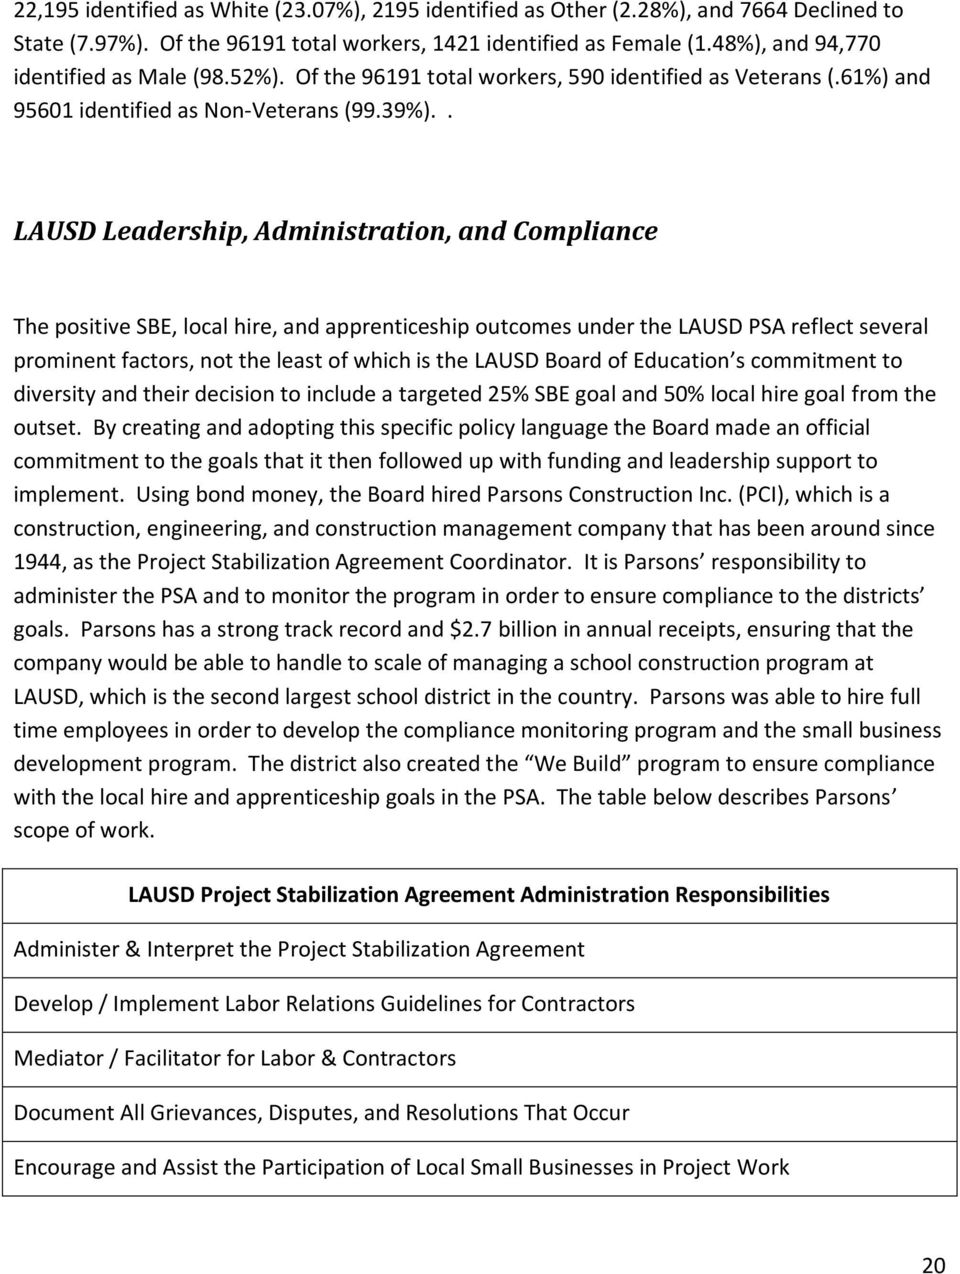 . LAUSD Leadership, Administration, and Compliance The positive SBE, local hire, and apprenticeship outcomes under the LAUSD PSA reflect several prominent factors, not the least of which is the LAUSD